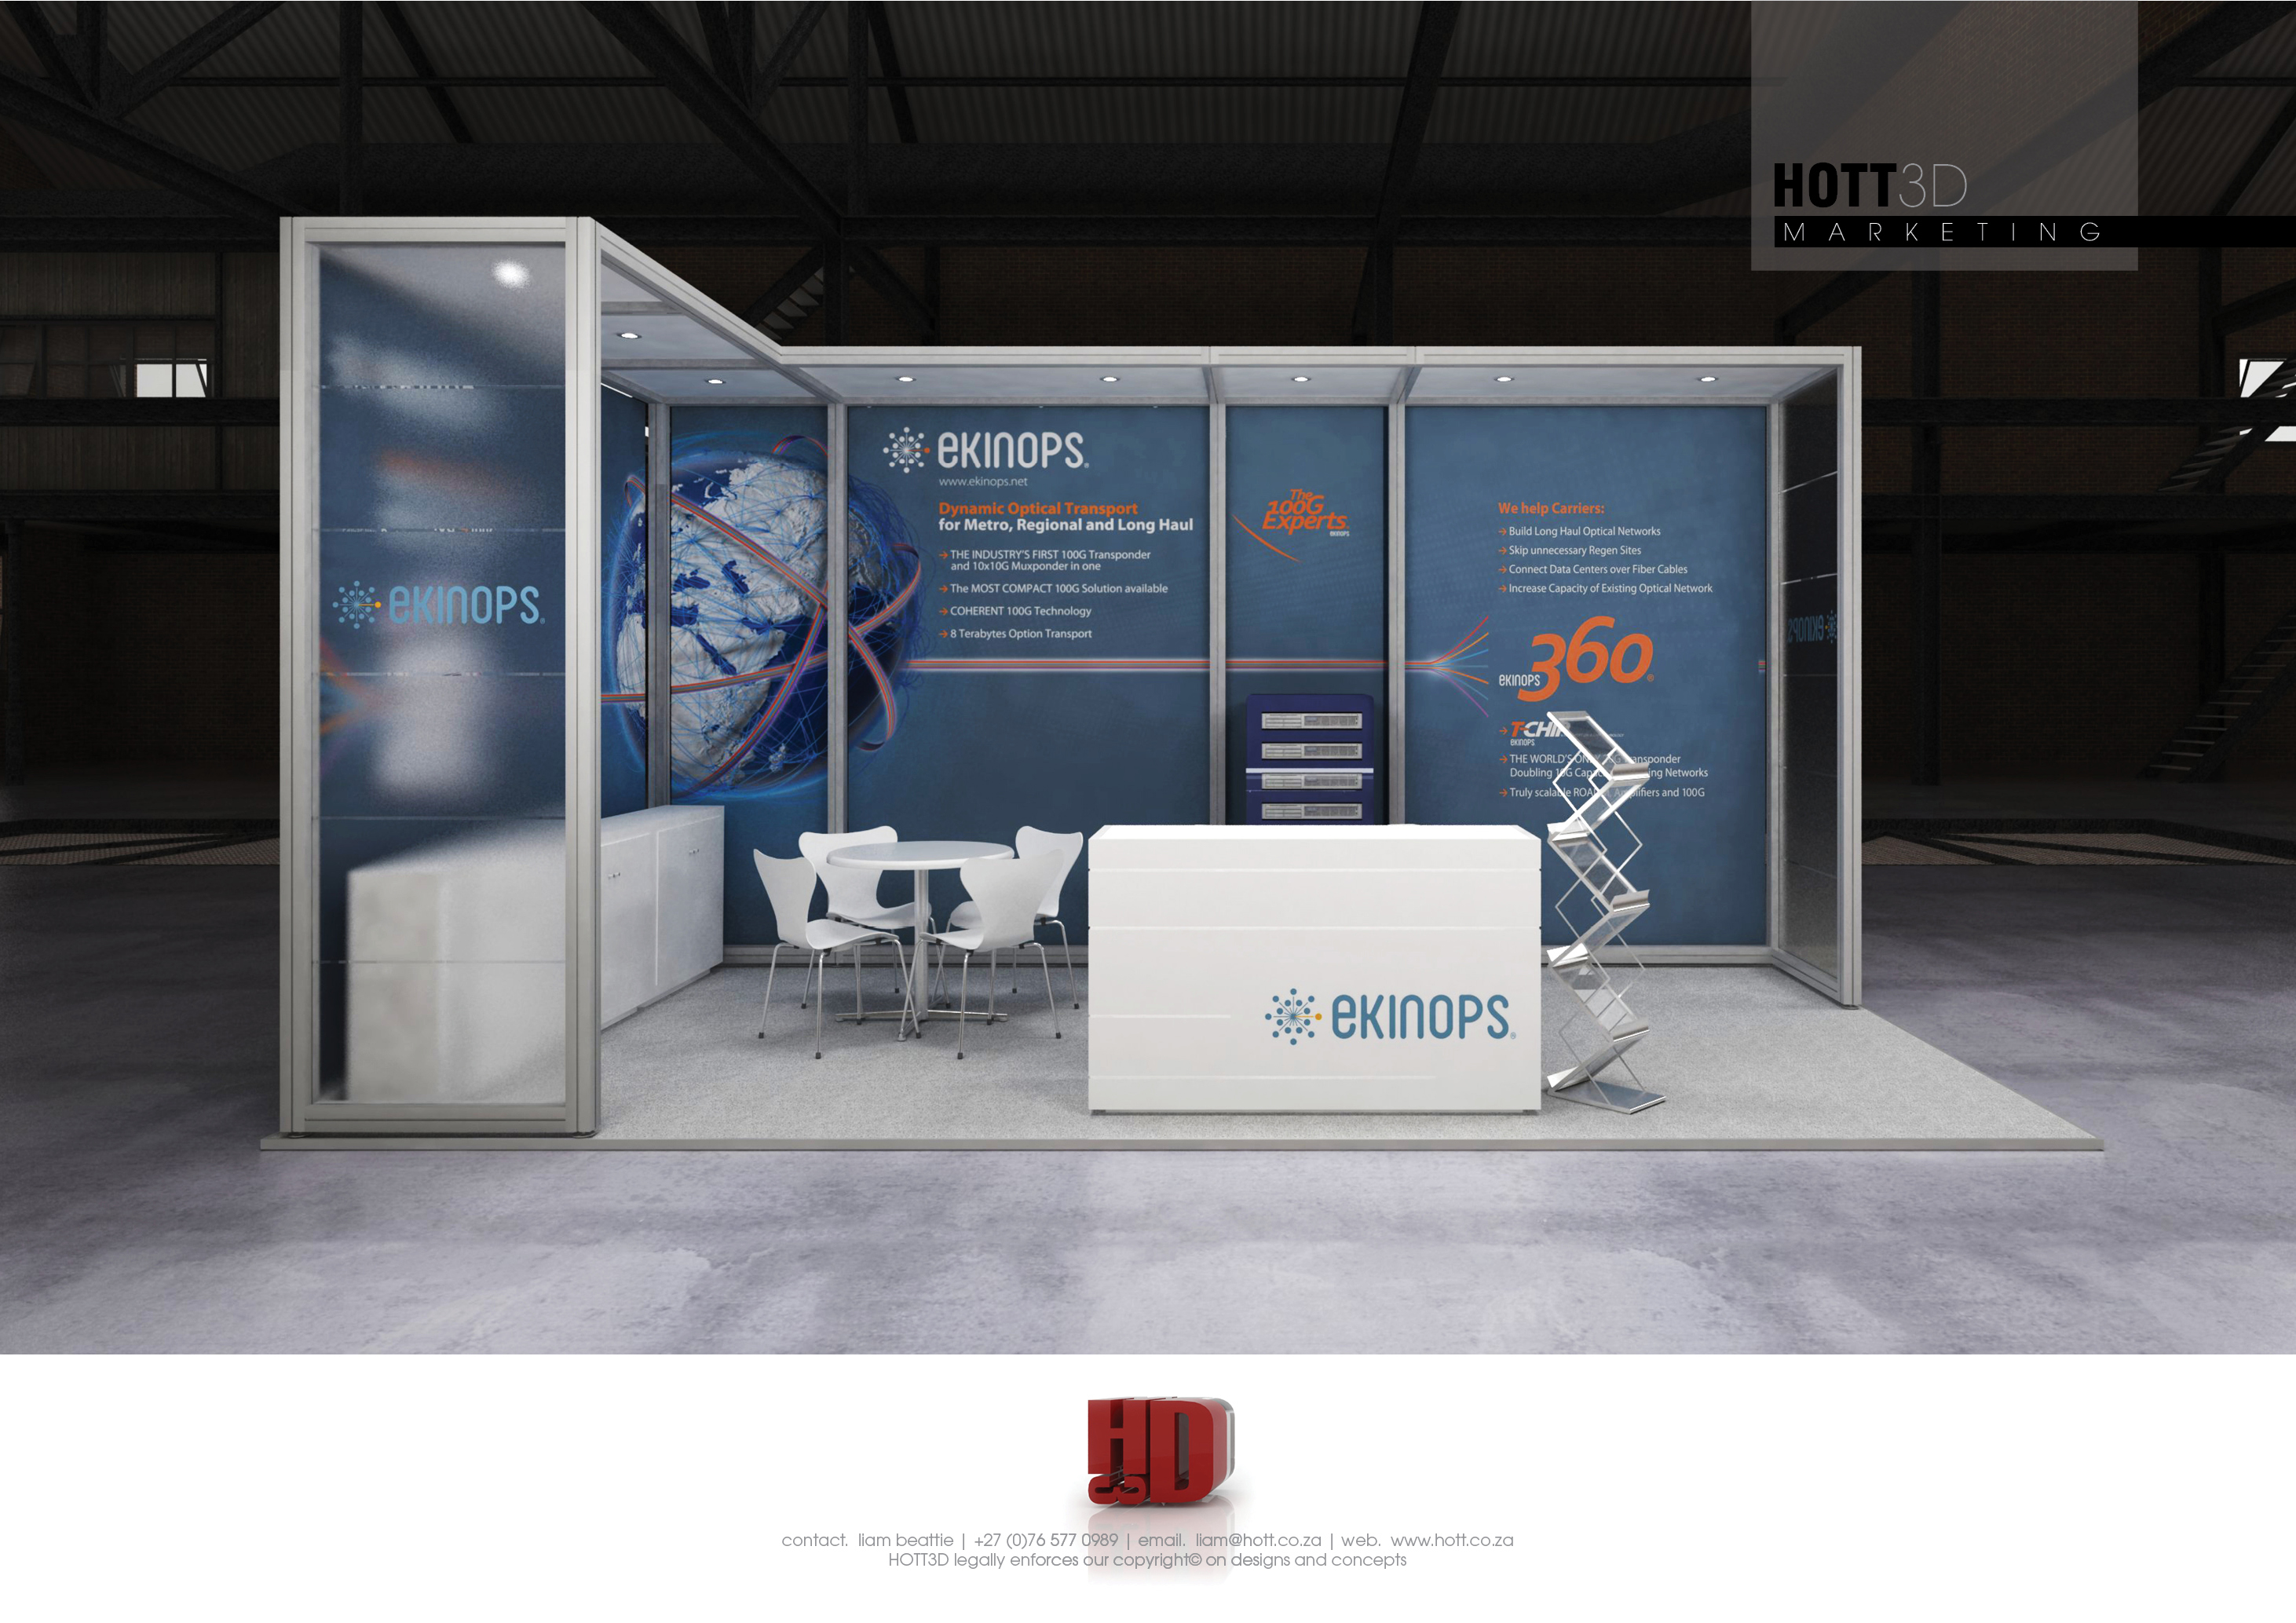 Exhibition Stand Builders Cape Town : Ekinops africacom hott d octanorm maxima